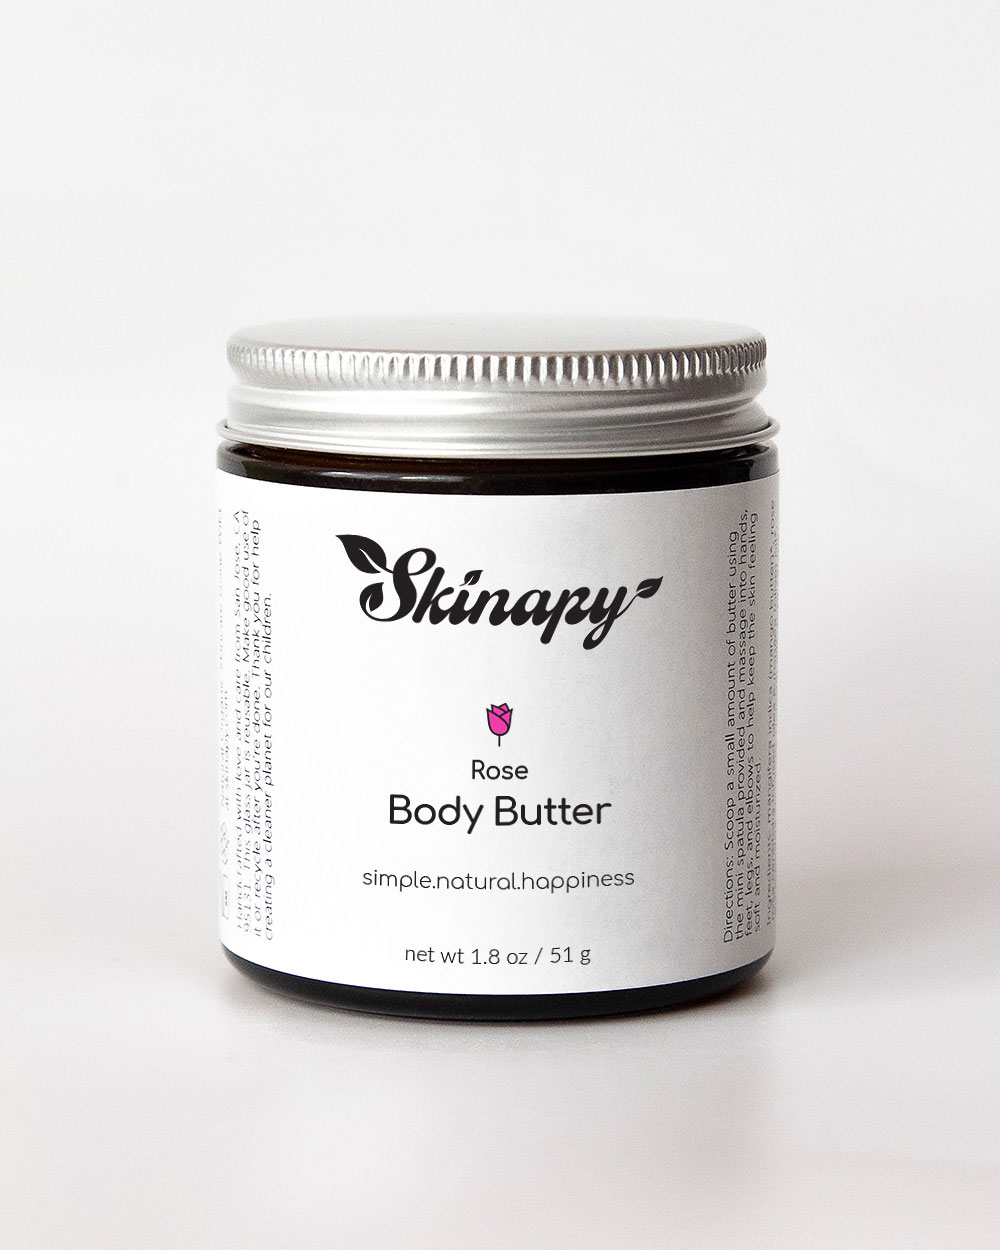 Skinapy natural and organic body butter with rose scent inside a dark amber glass jar with silver metal aluminum lid